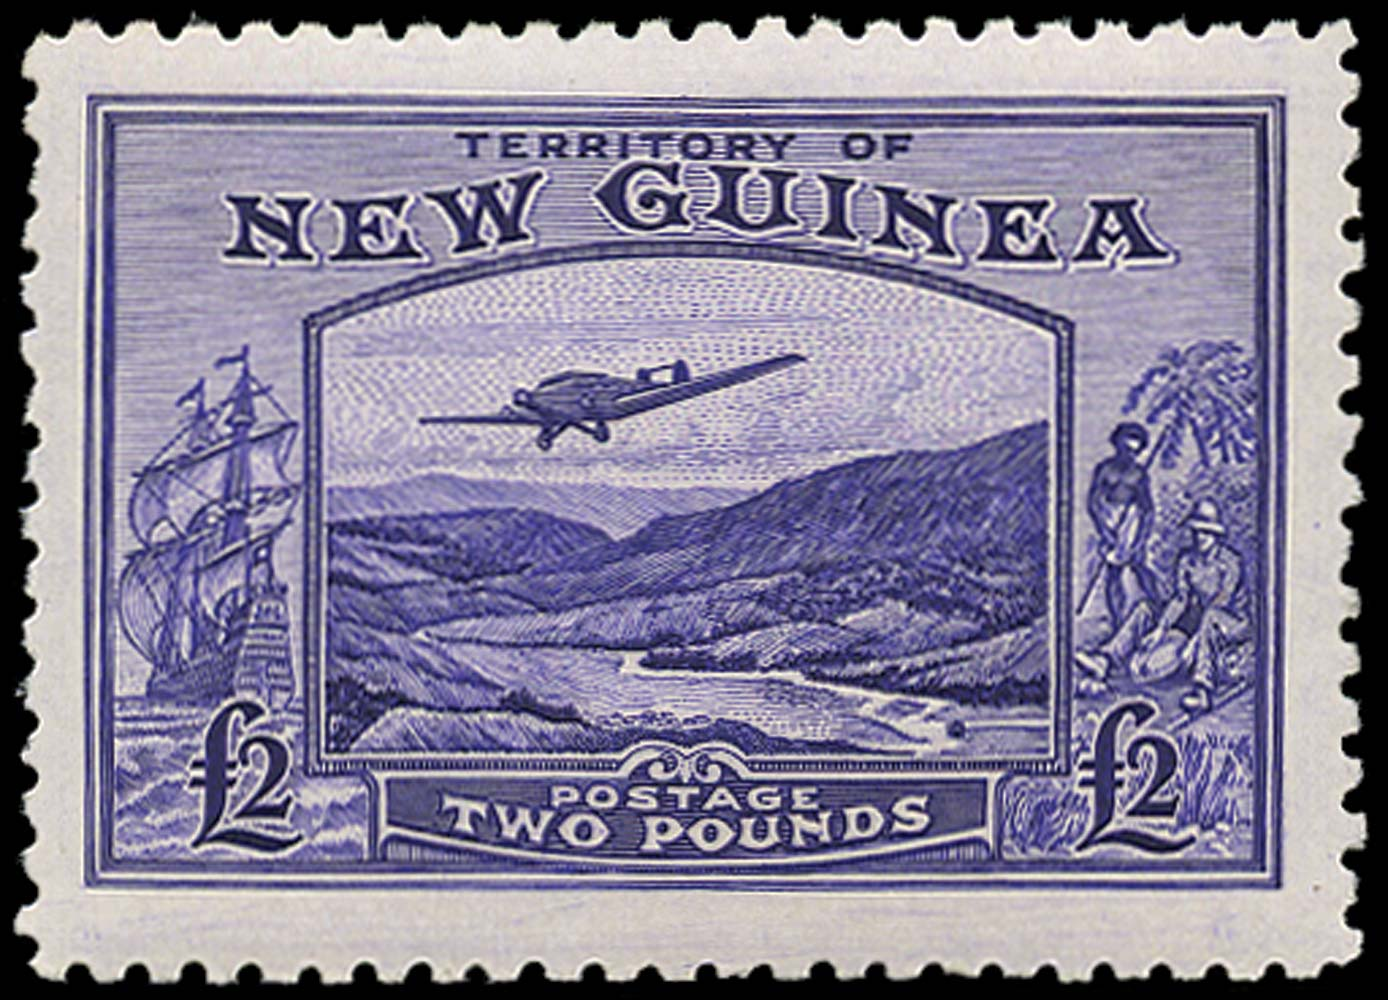 NEW GUINEA 1935  SG204 Mint £2 bright violet unmounted